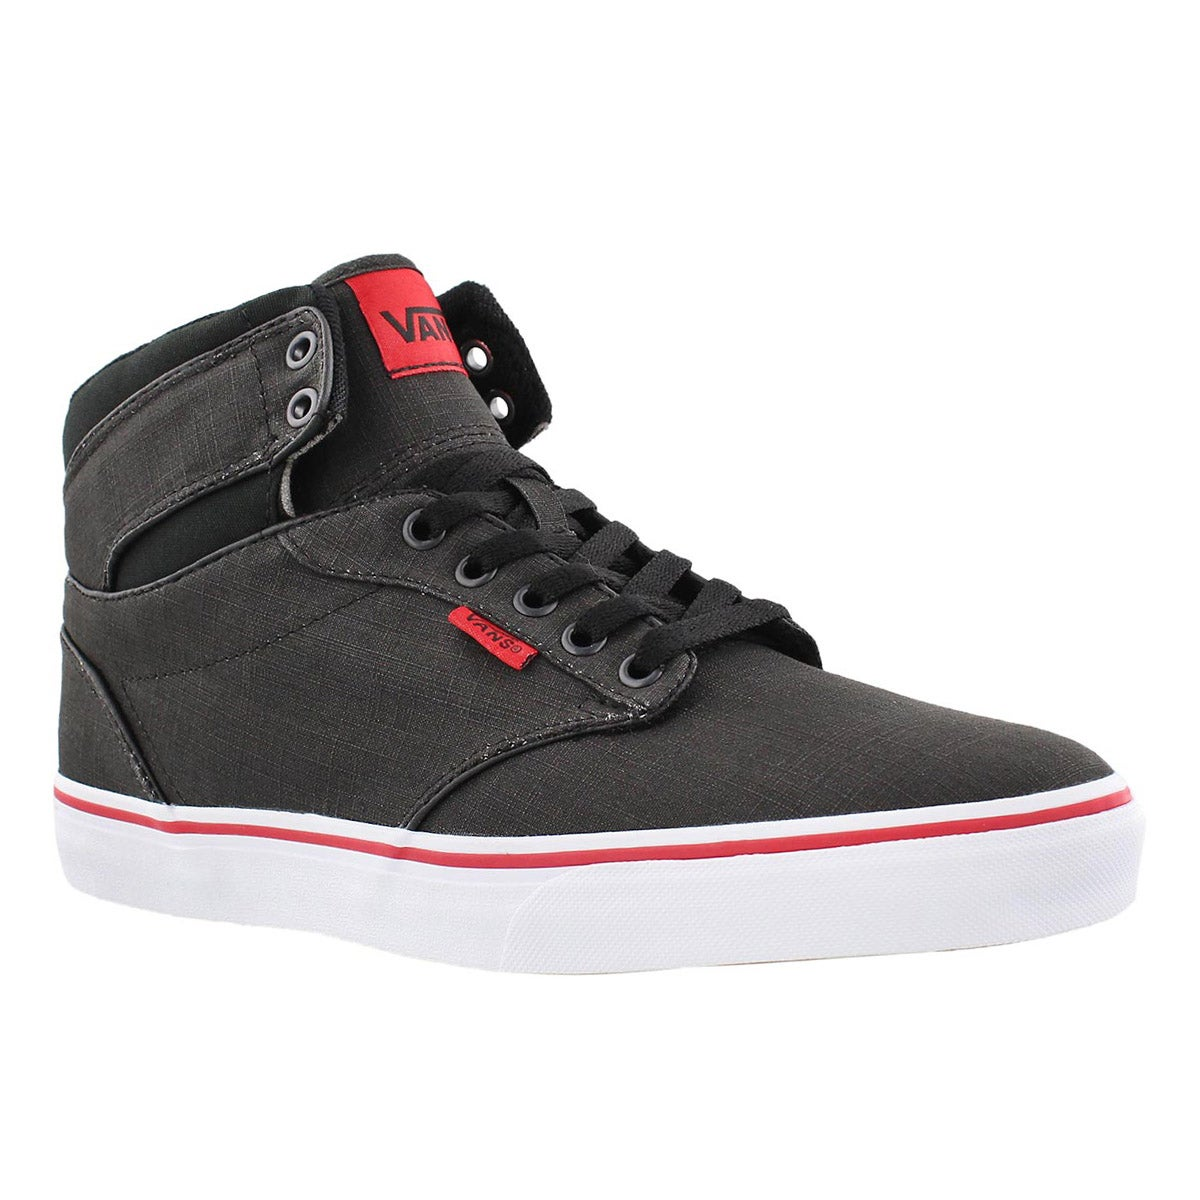 Men's ATWOOD HI black/red sneakers